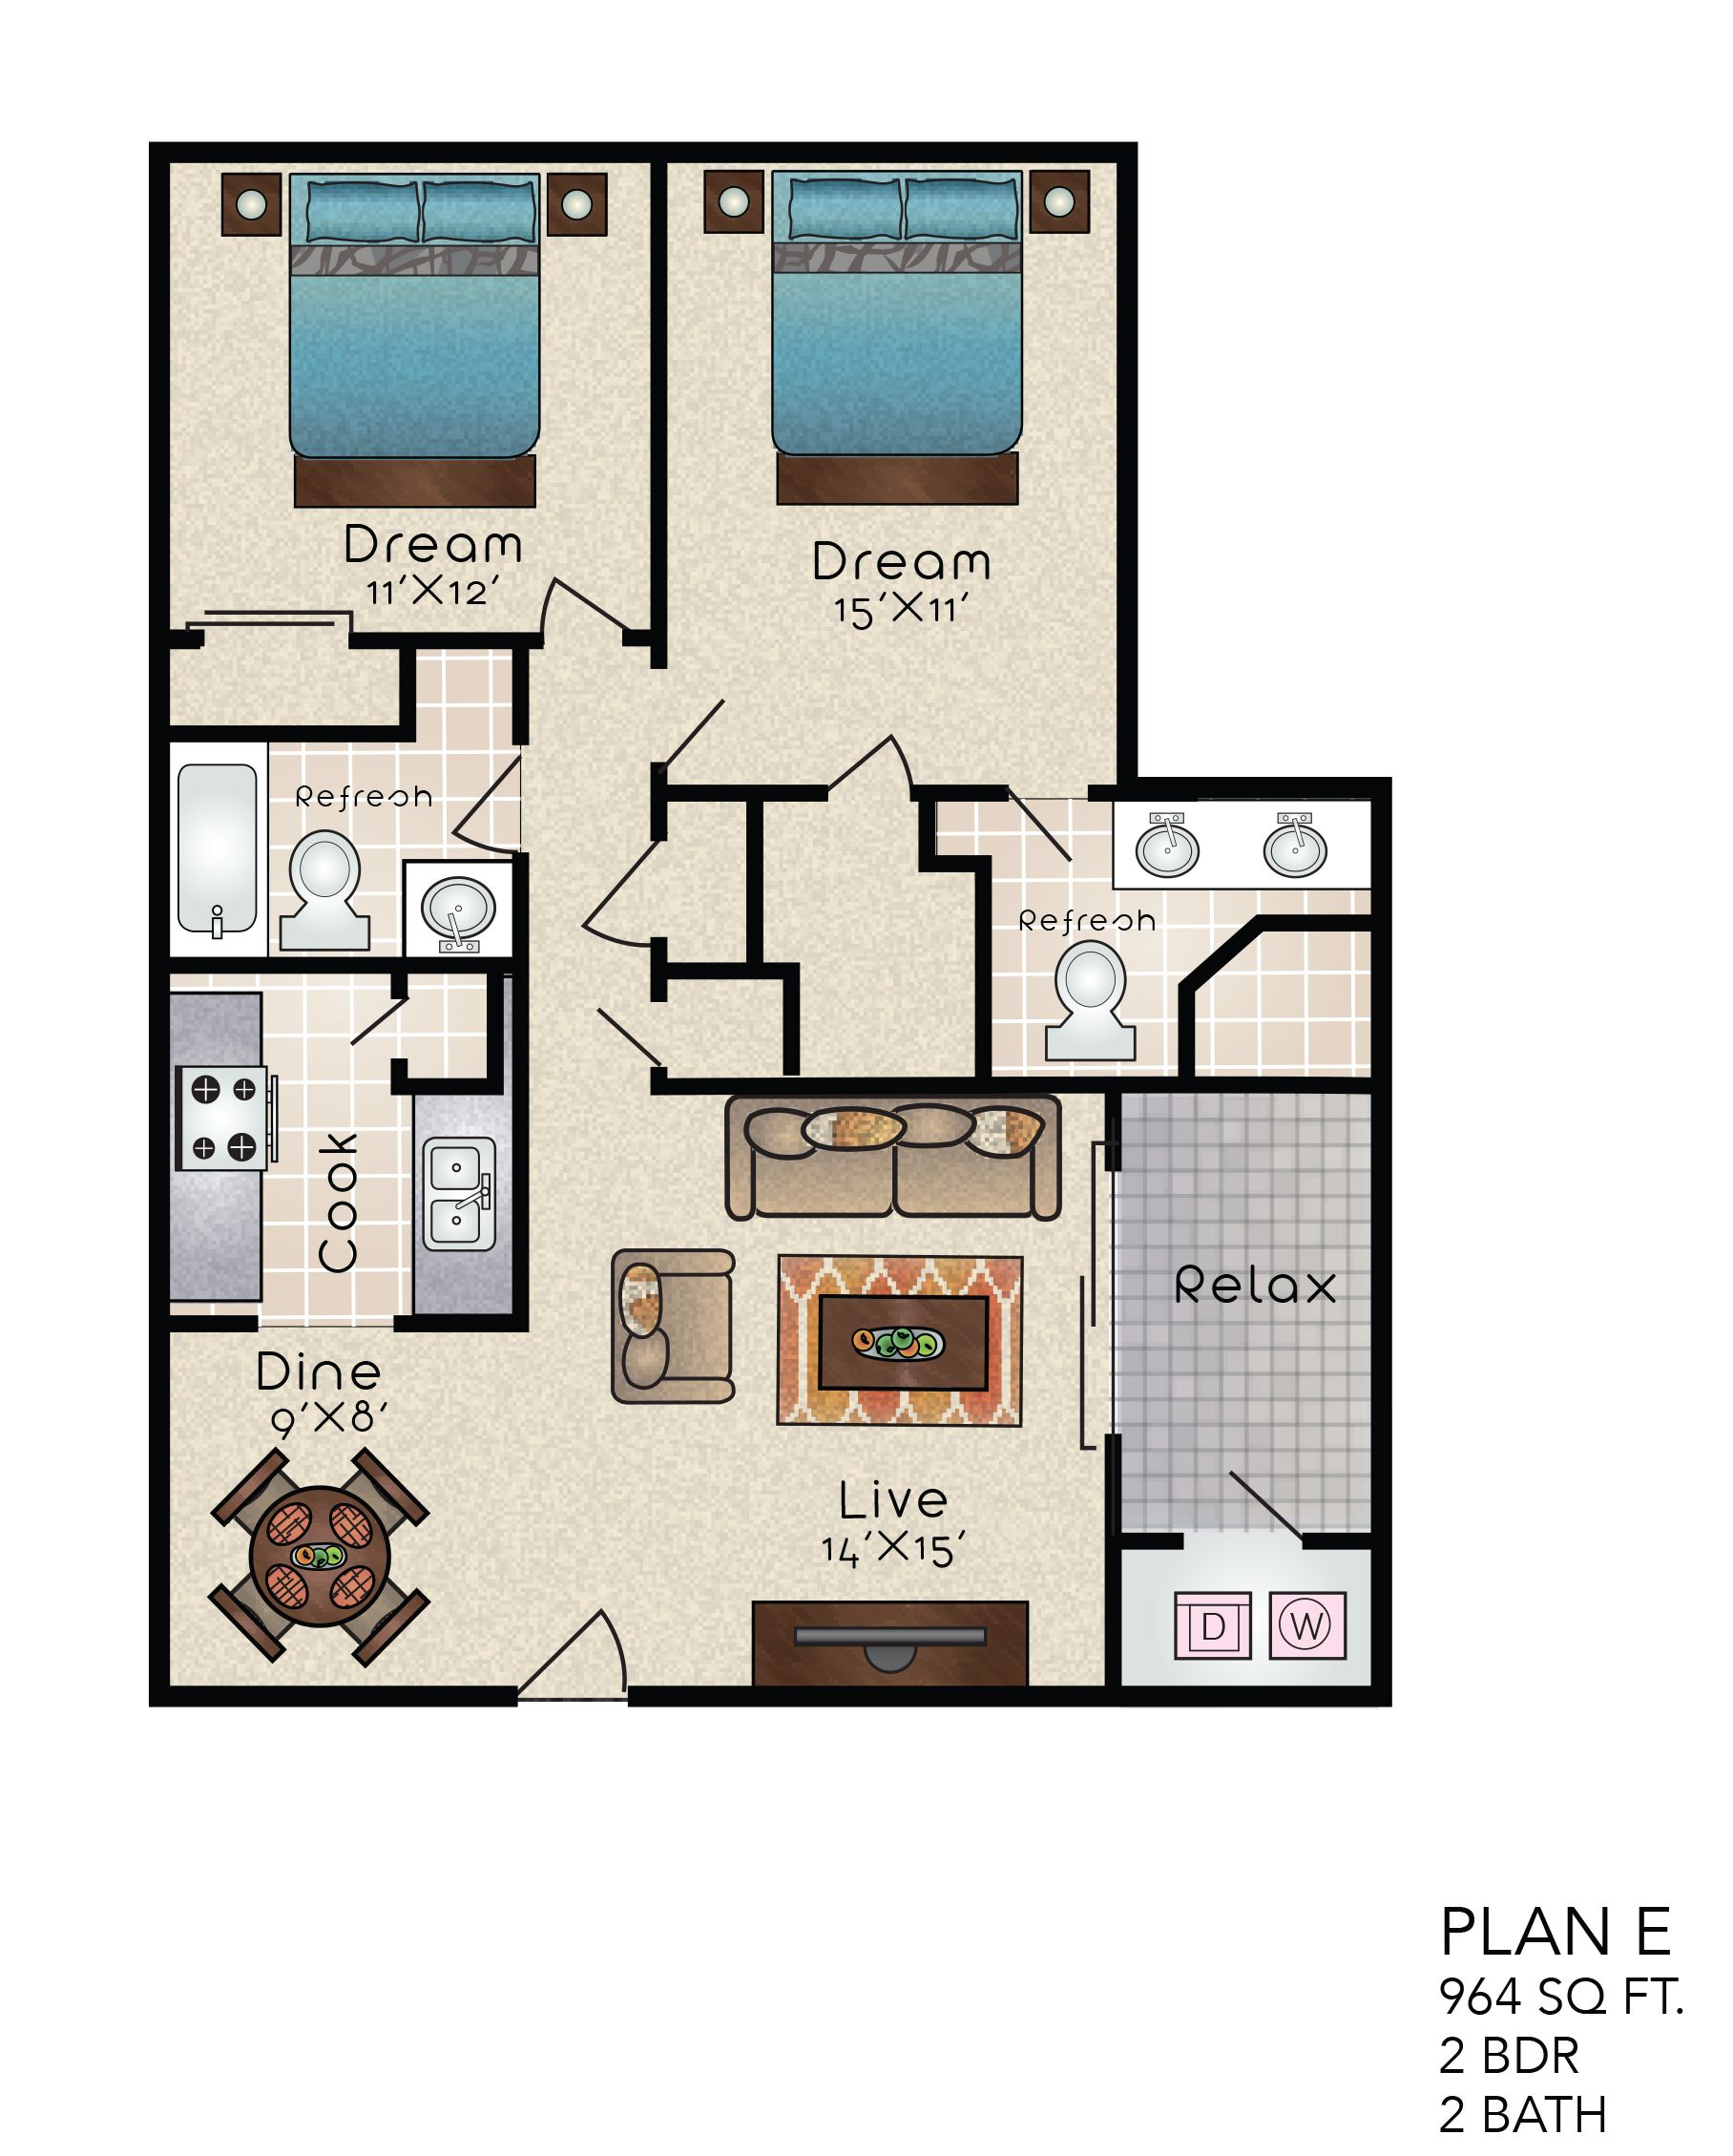 Pin By Amyj P On Floorplans Property Photos Small House Plans Little Houses Mobile Home Renovations